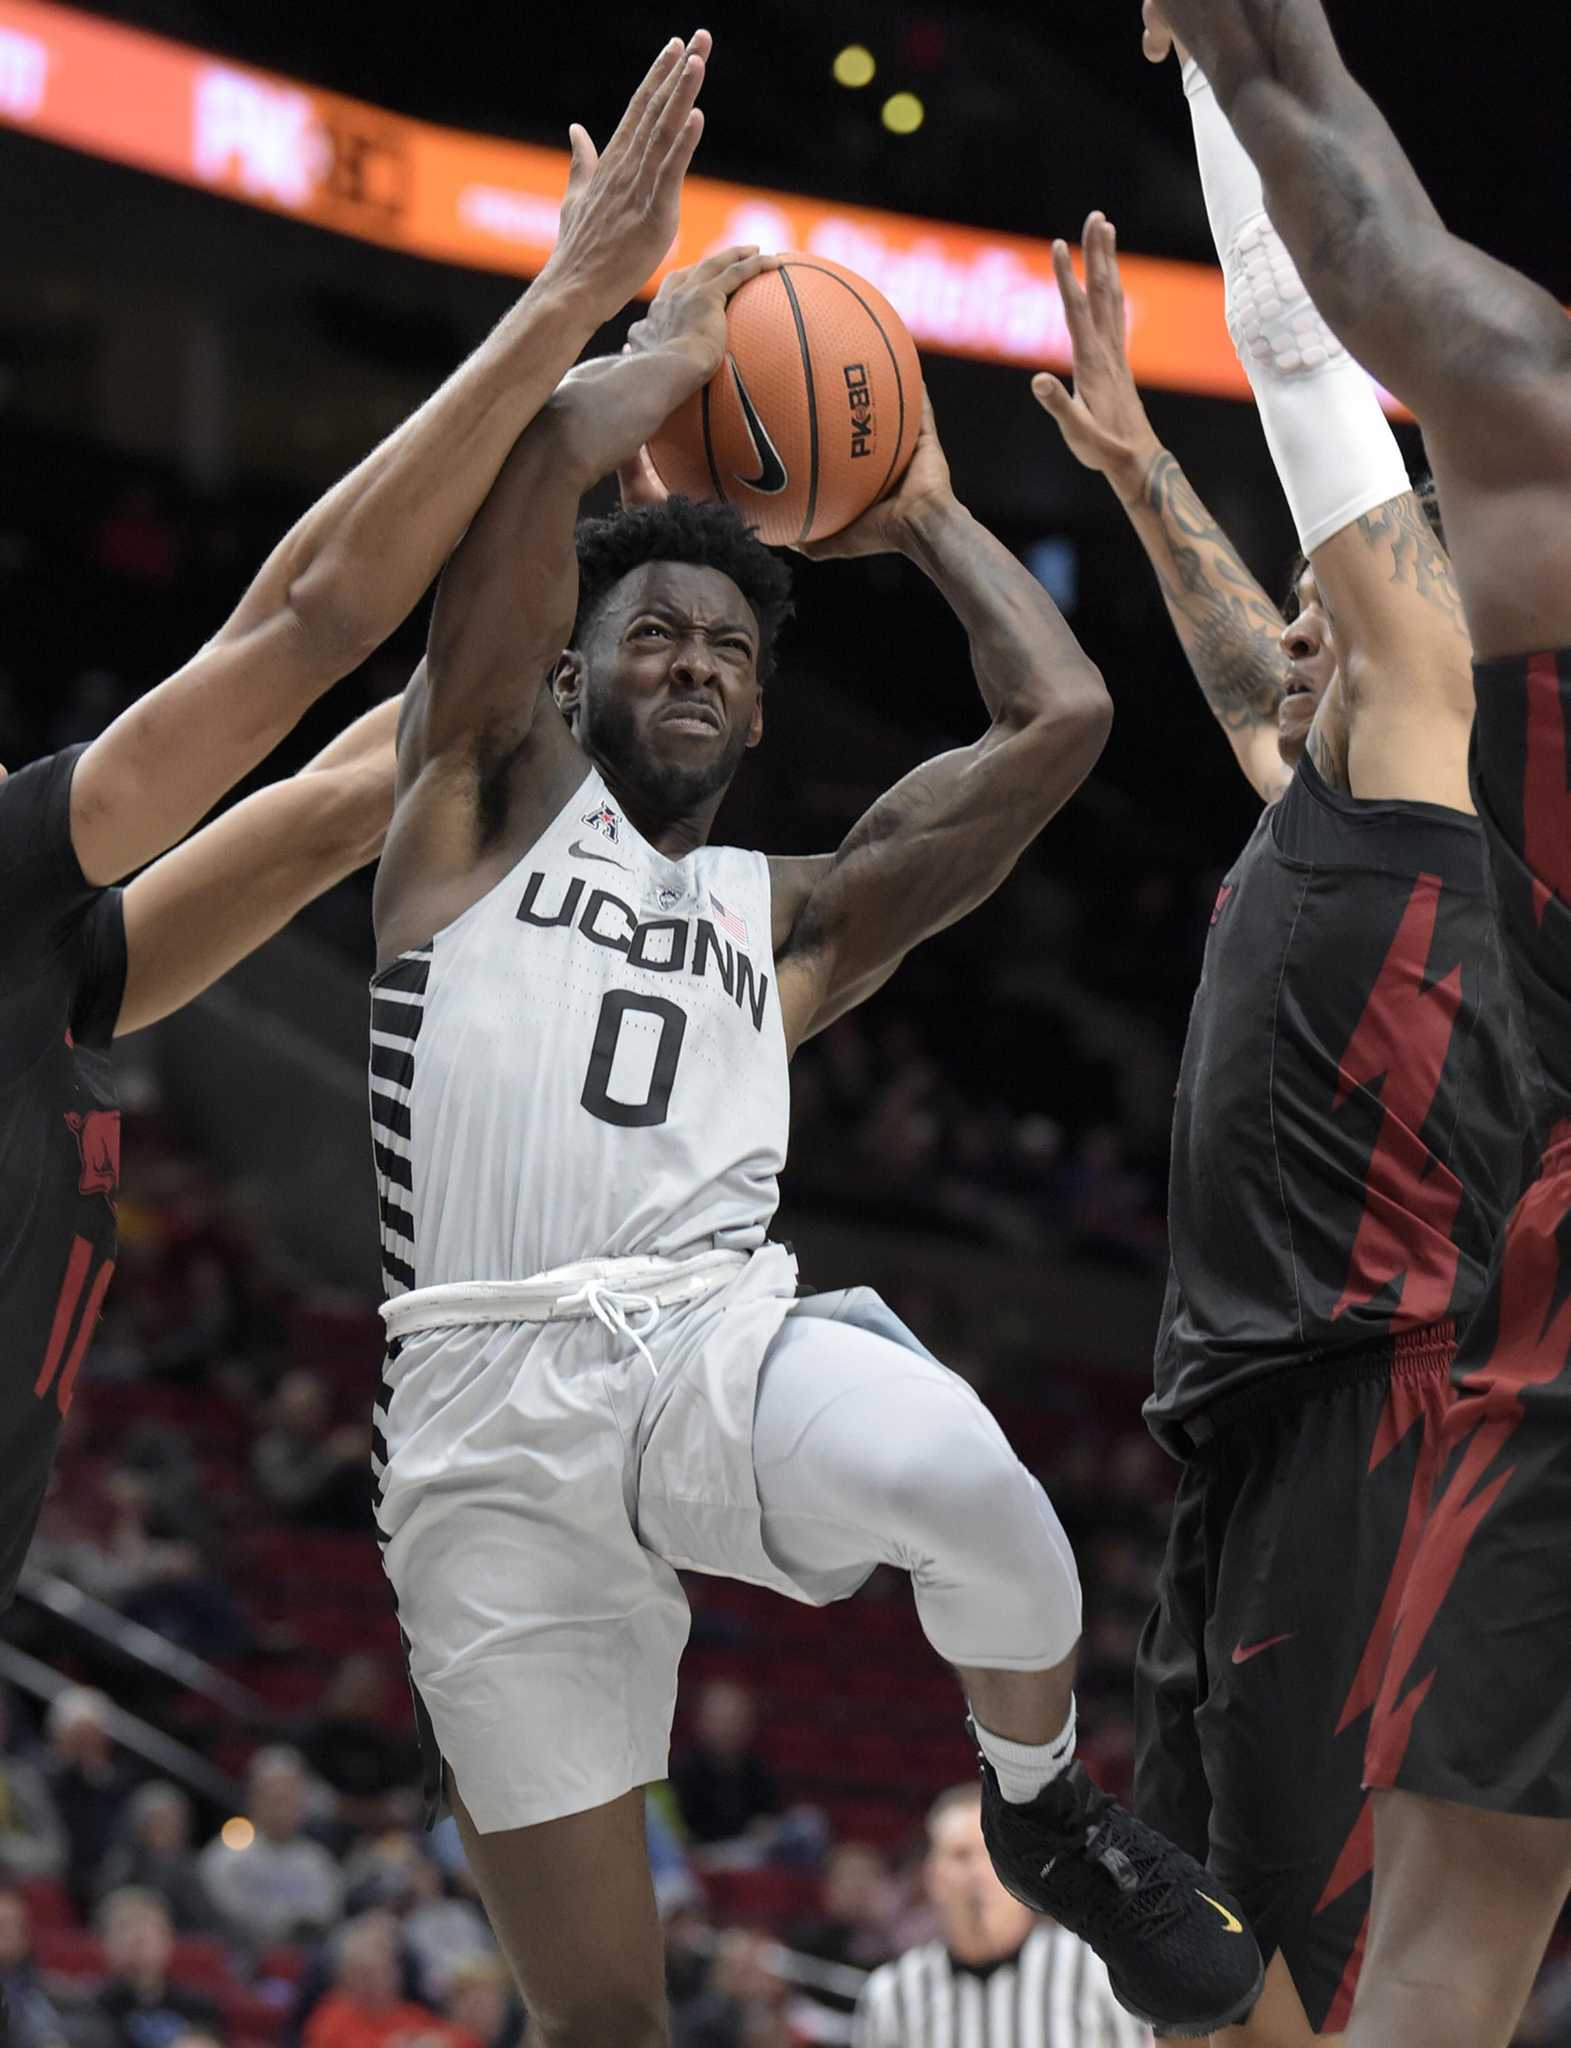 Back to the drawing board for UConn men's basketball team ...